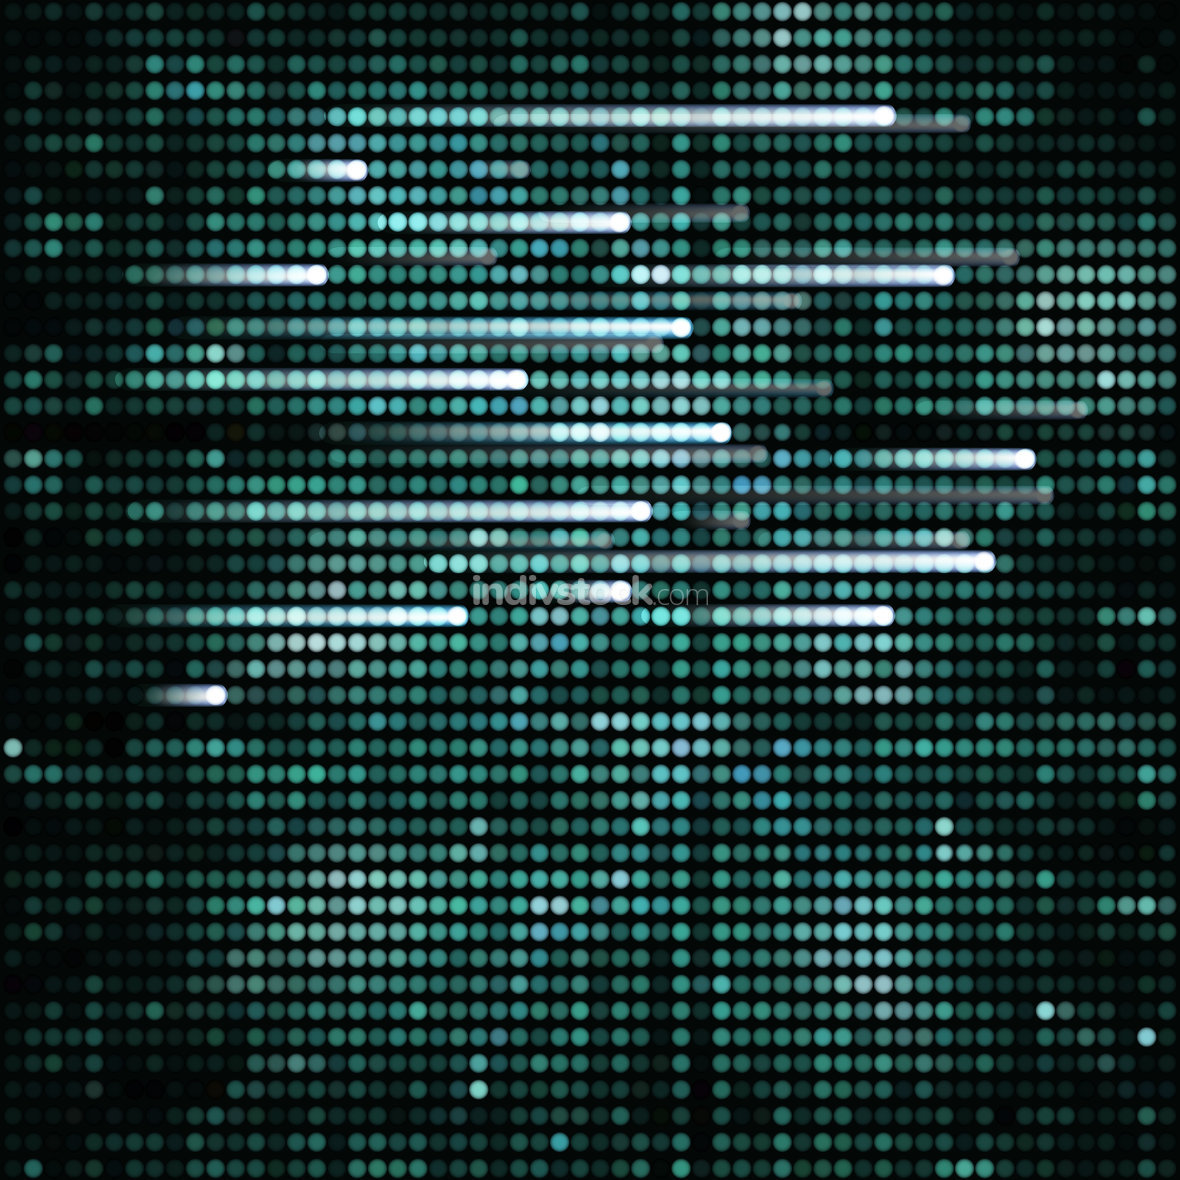 Abstract turquoise techno background, vector.